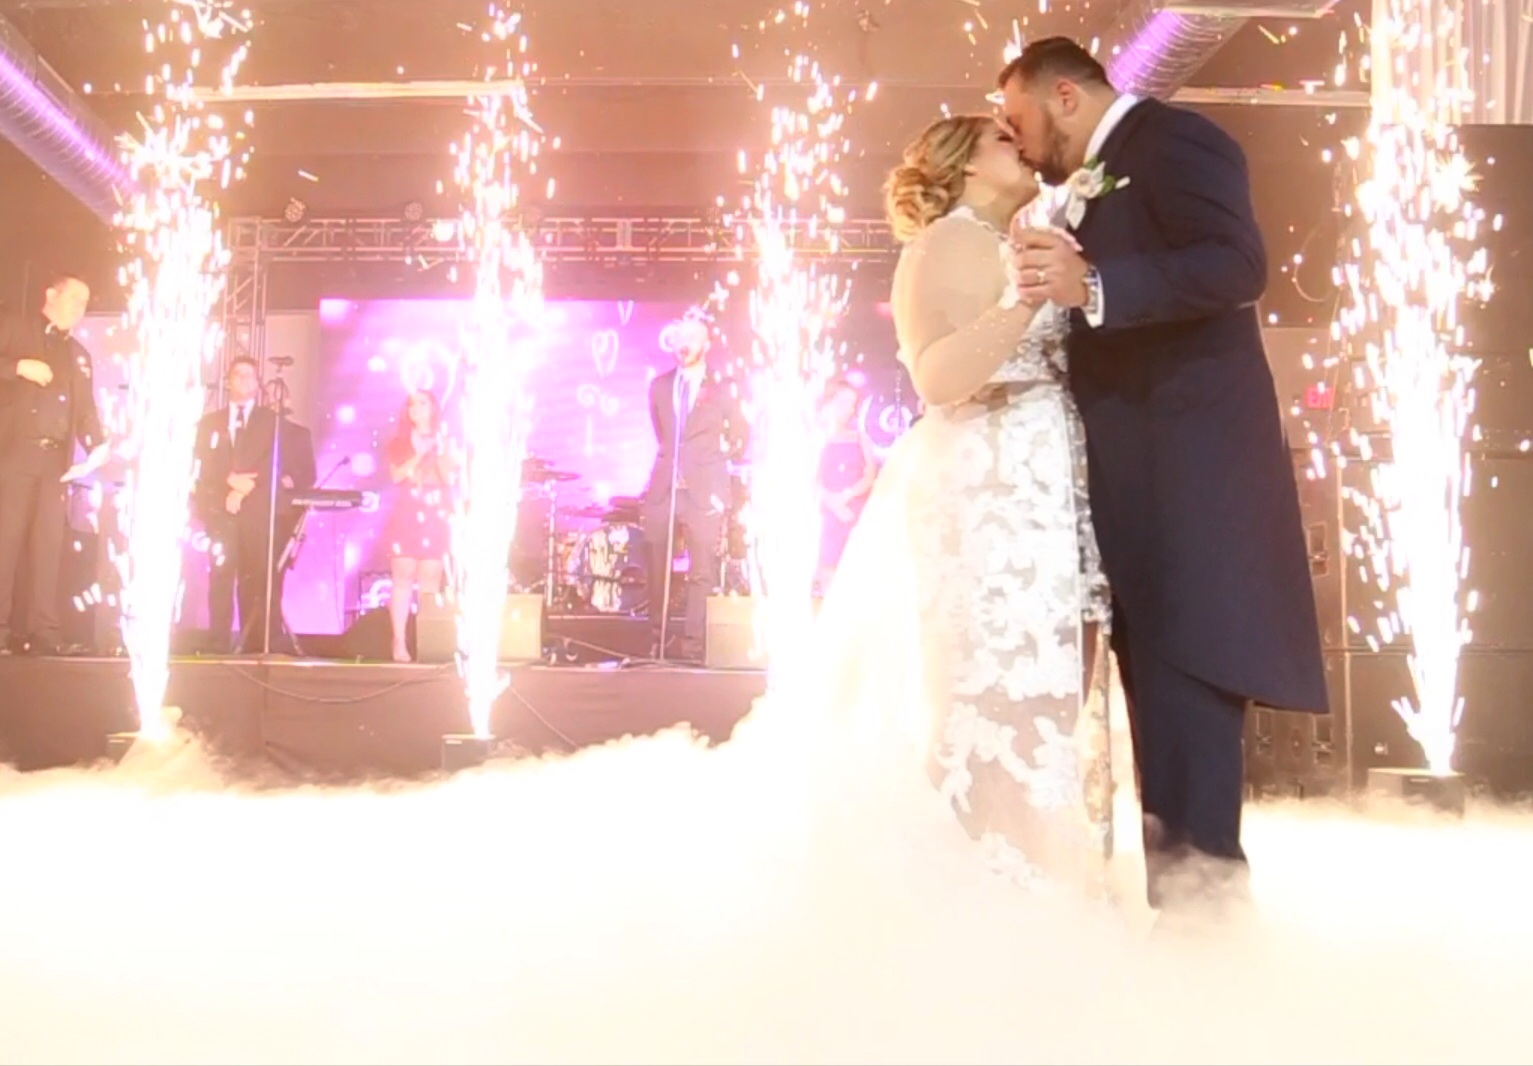 Special effects - low lying fog and sparkular machine for wedding